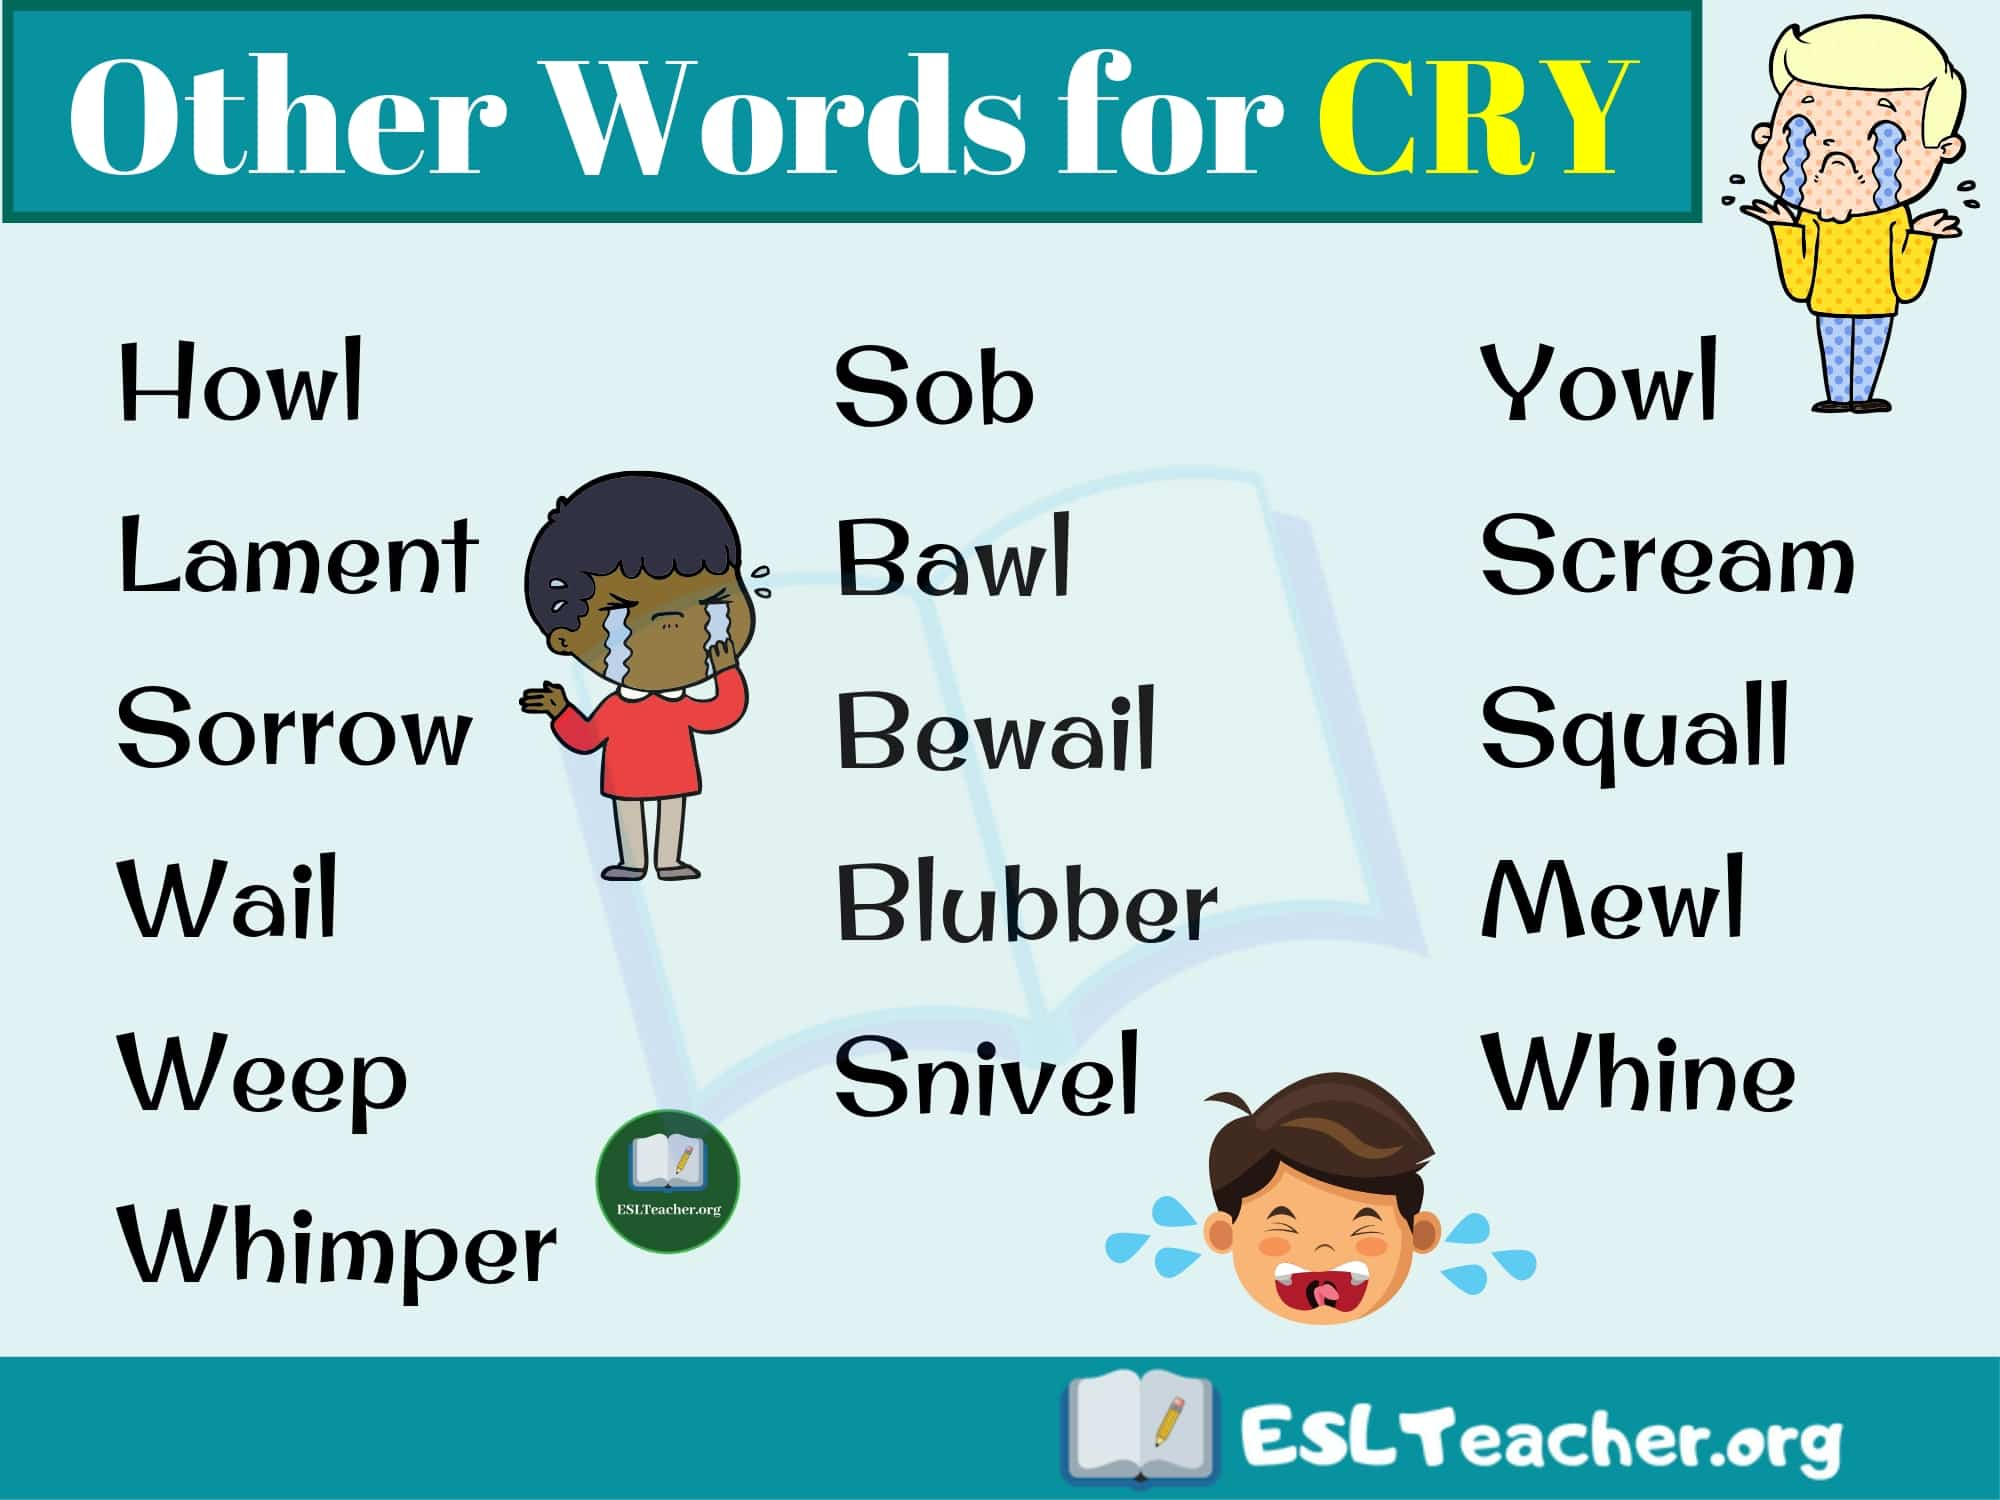 CRY Synonyms - Synonyms for Cry